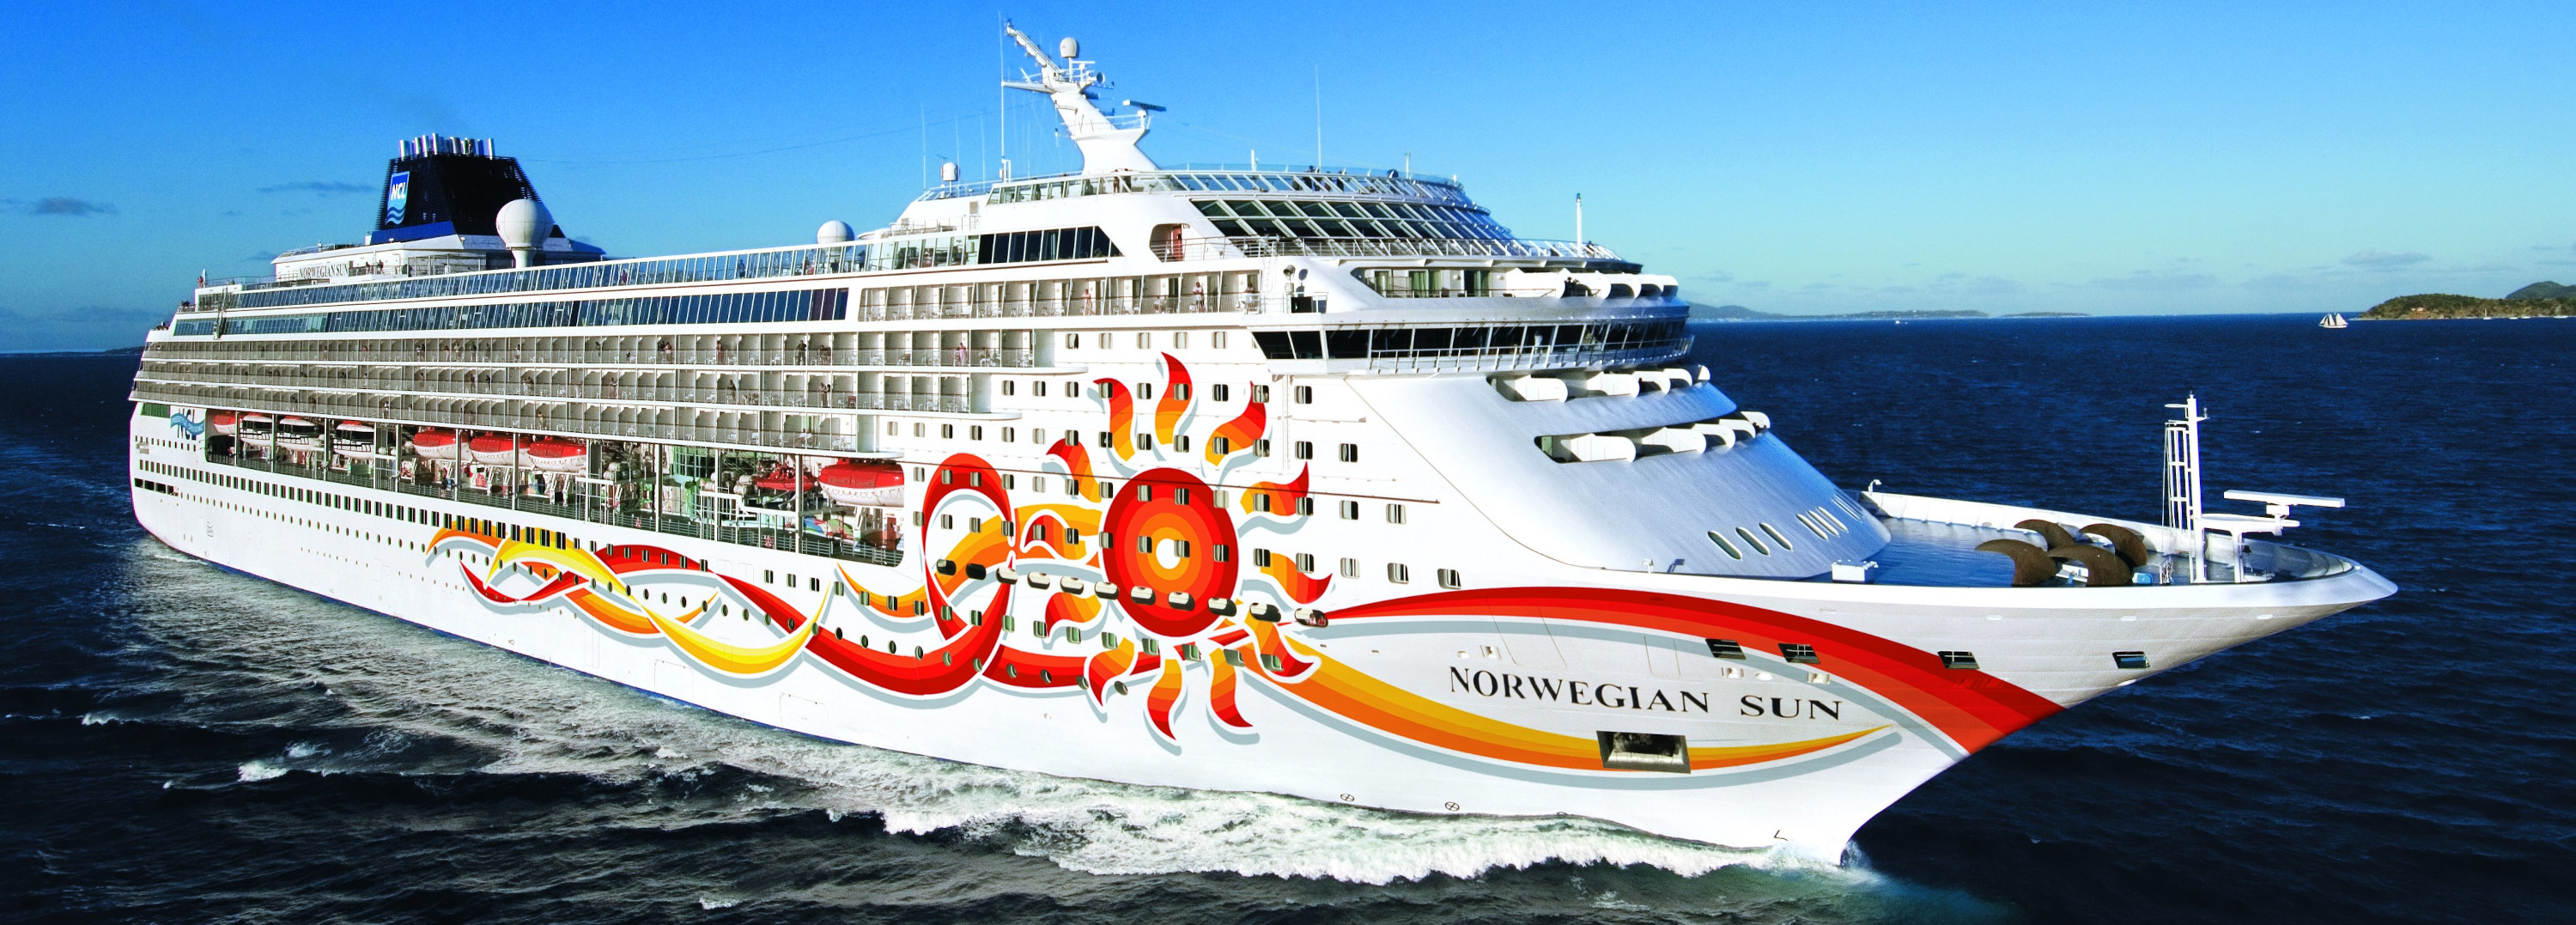 Taster Cuba Cruise from Orlando on Norwegian Sun